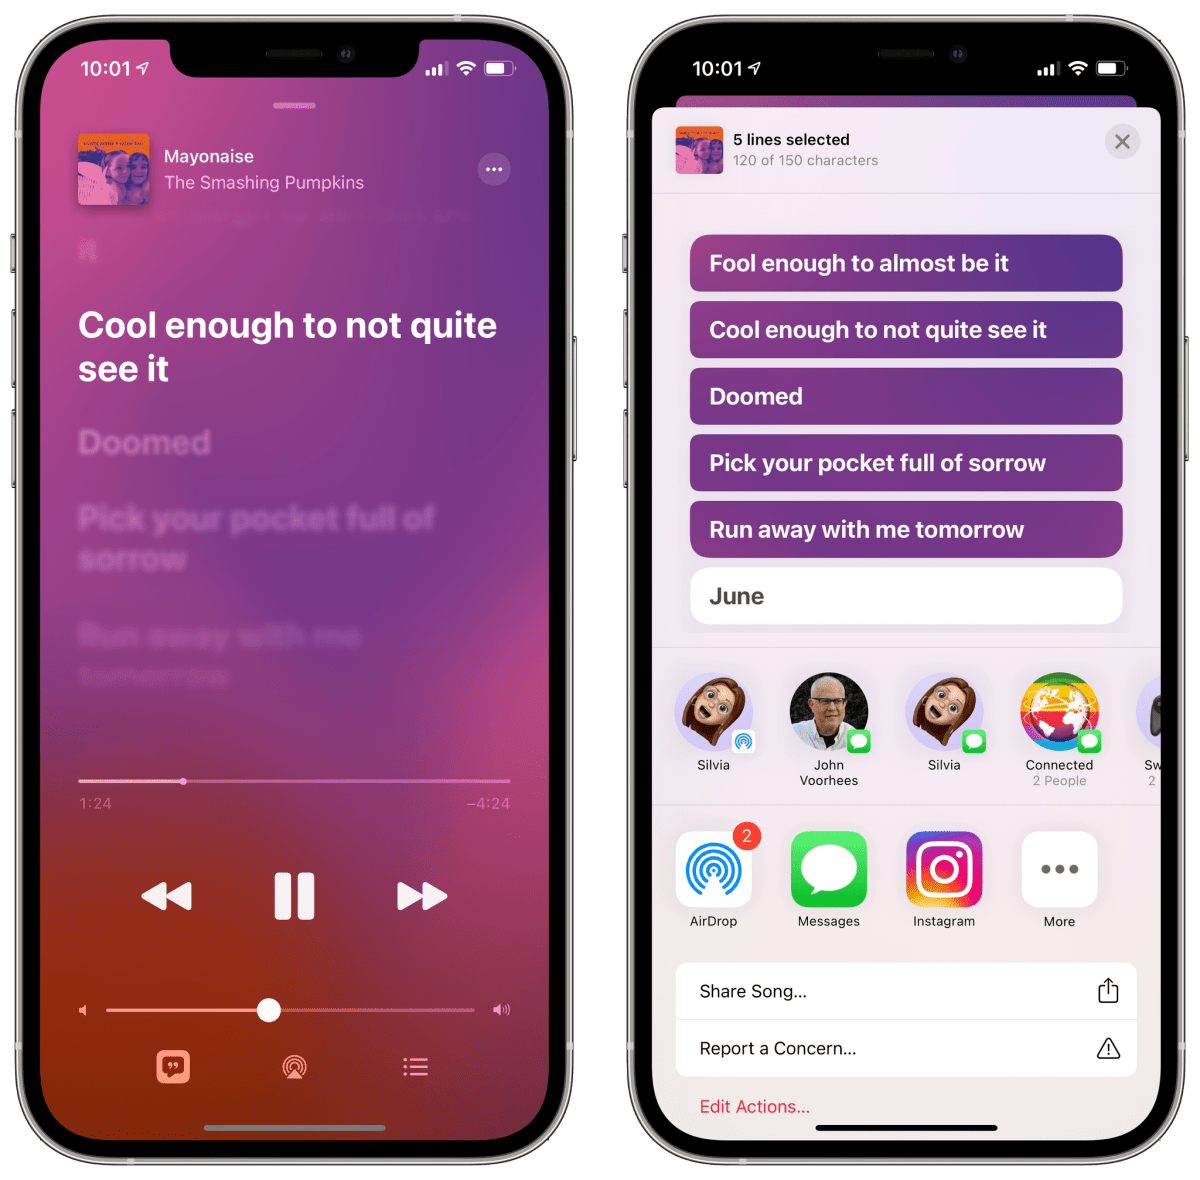 Tap and hold real-time lyrics in iOS 14.5 to share them.